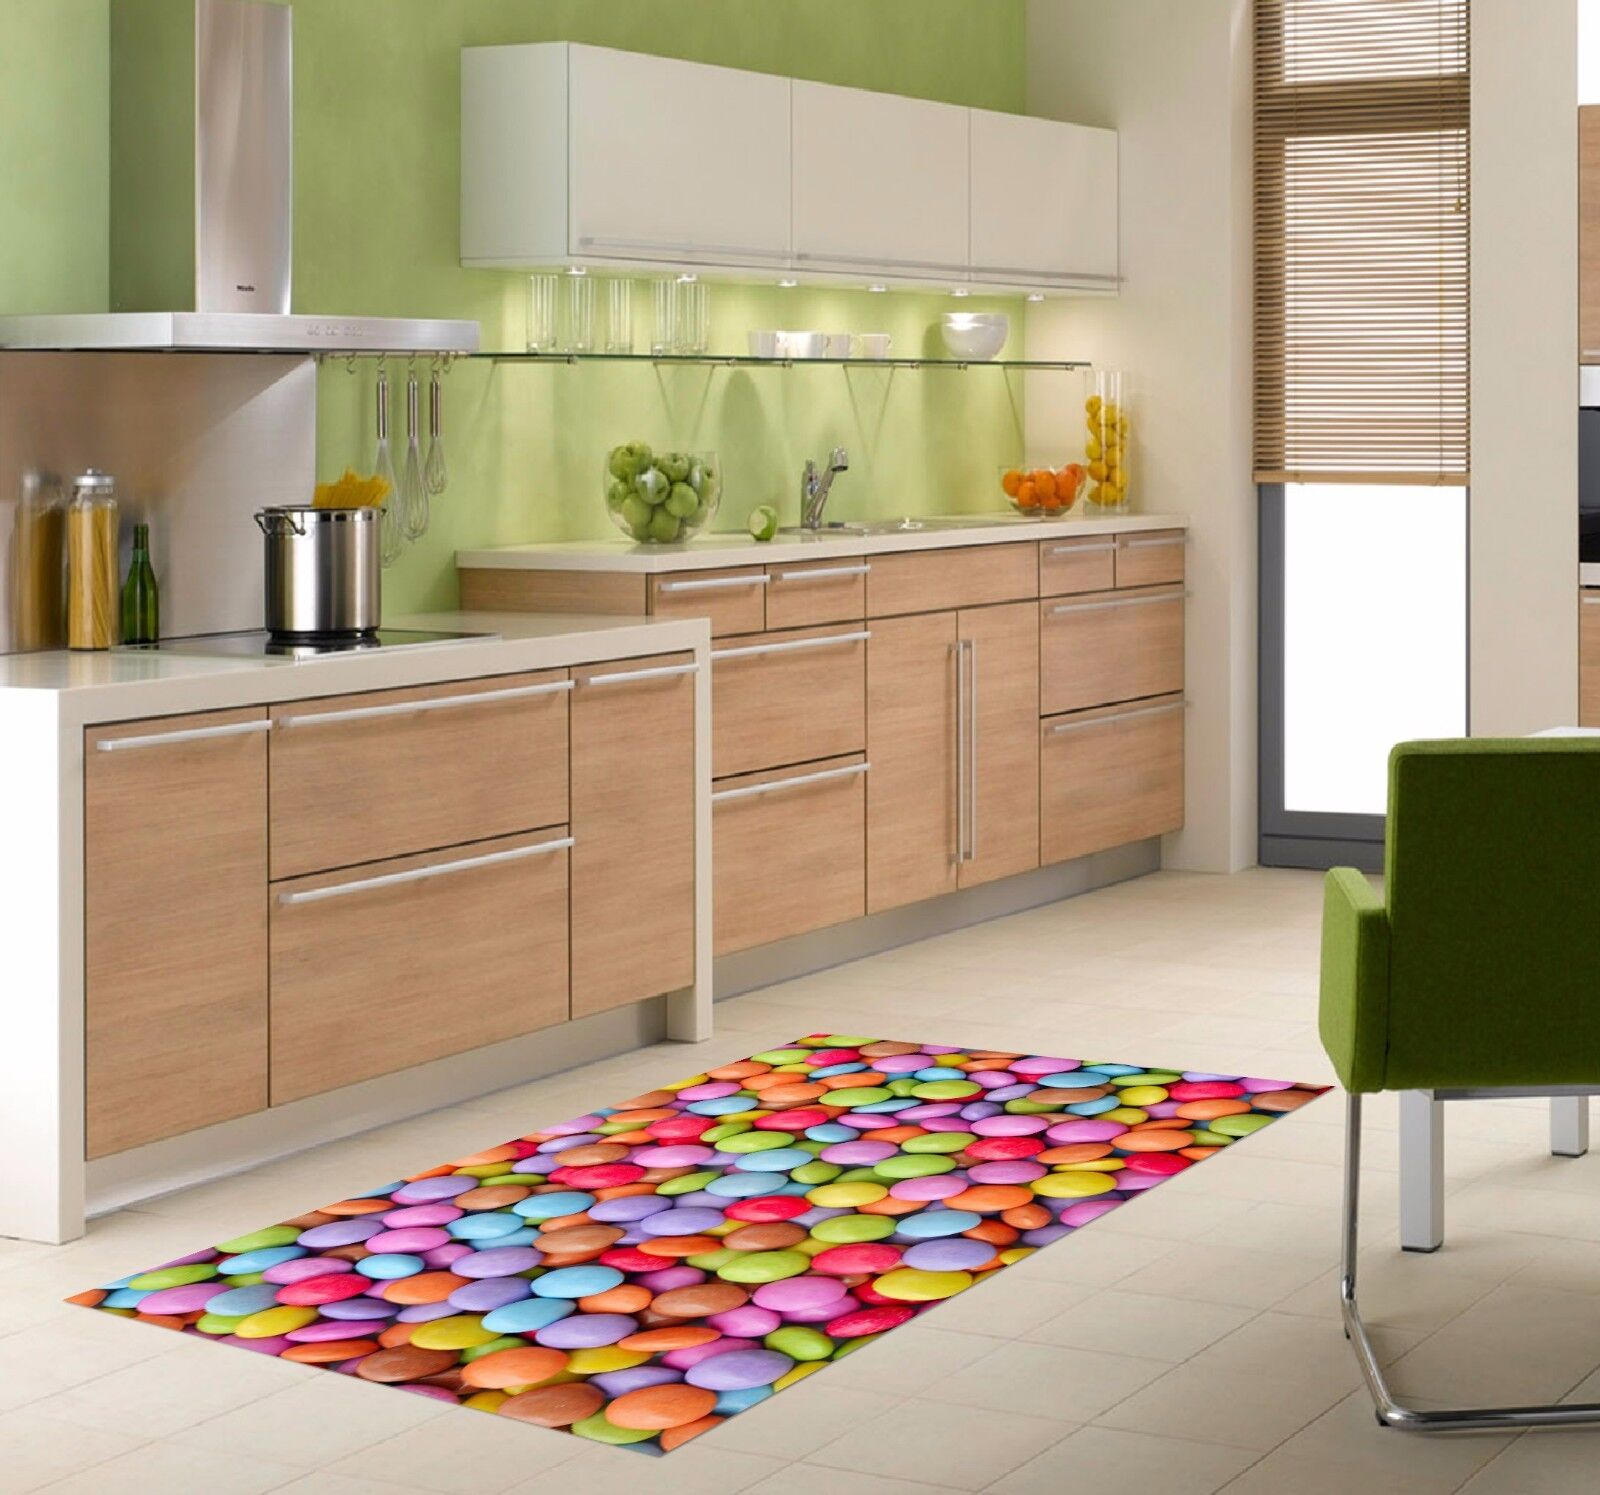 3D color Candy 756 Kitchen Mat Floor Murals Wall Print Wall AJ WALLPAPER UK Kyra